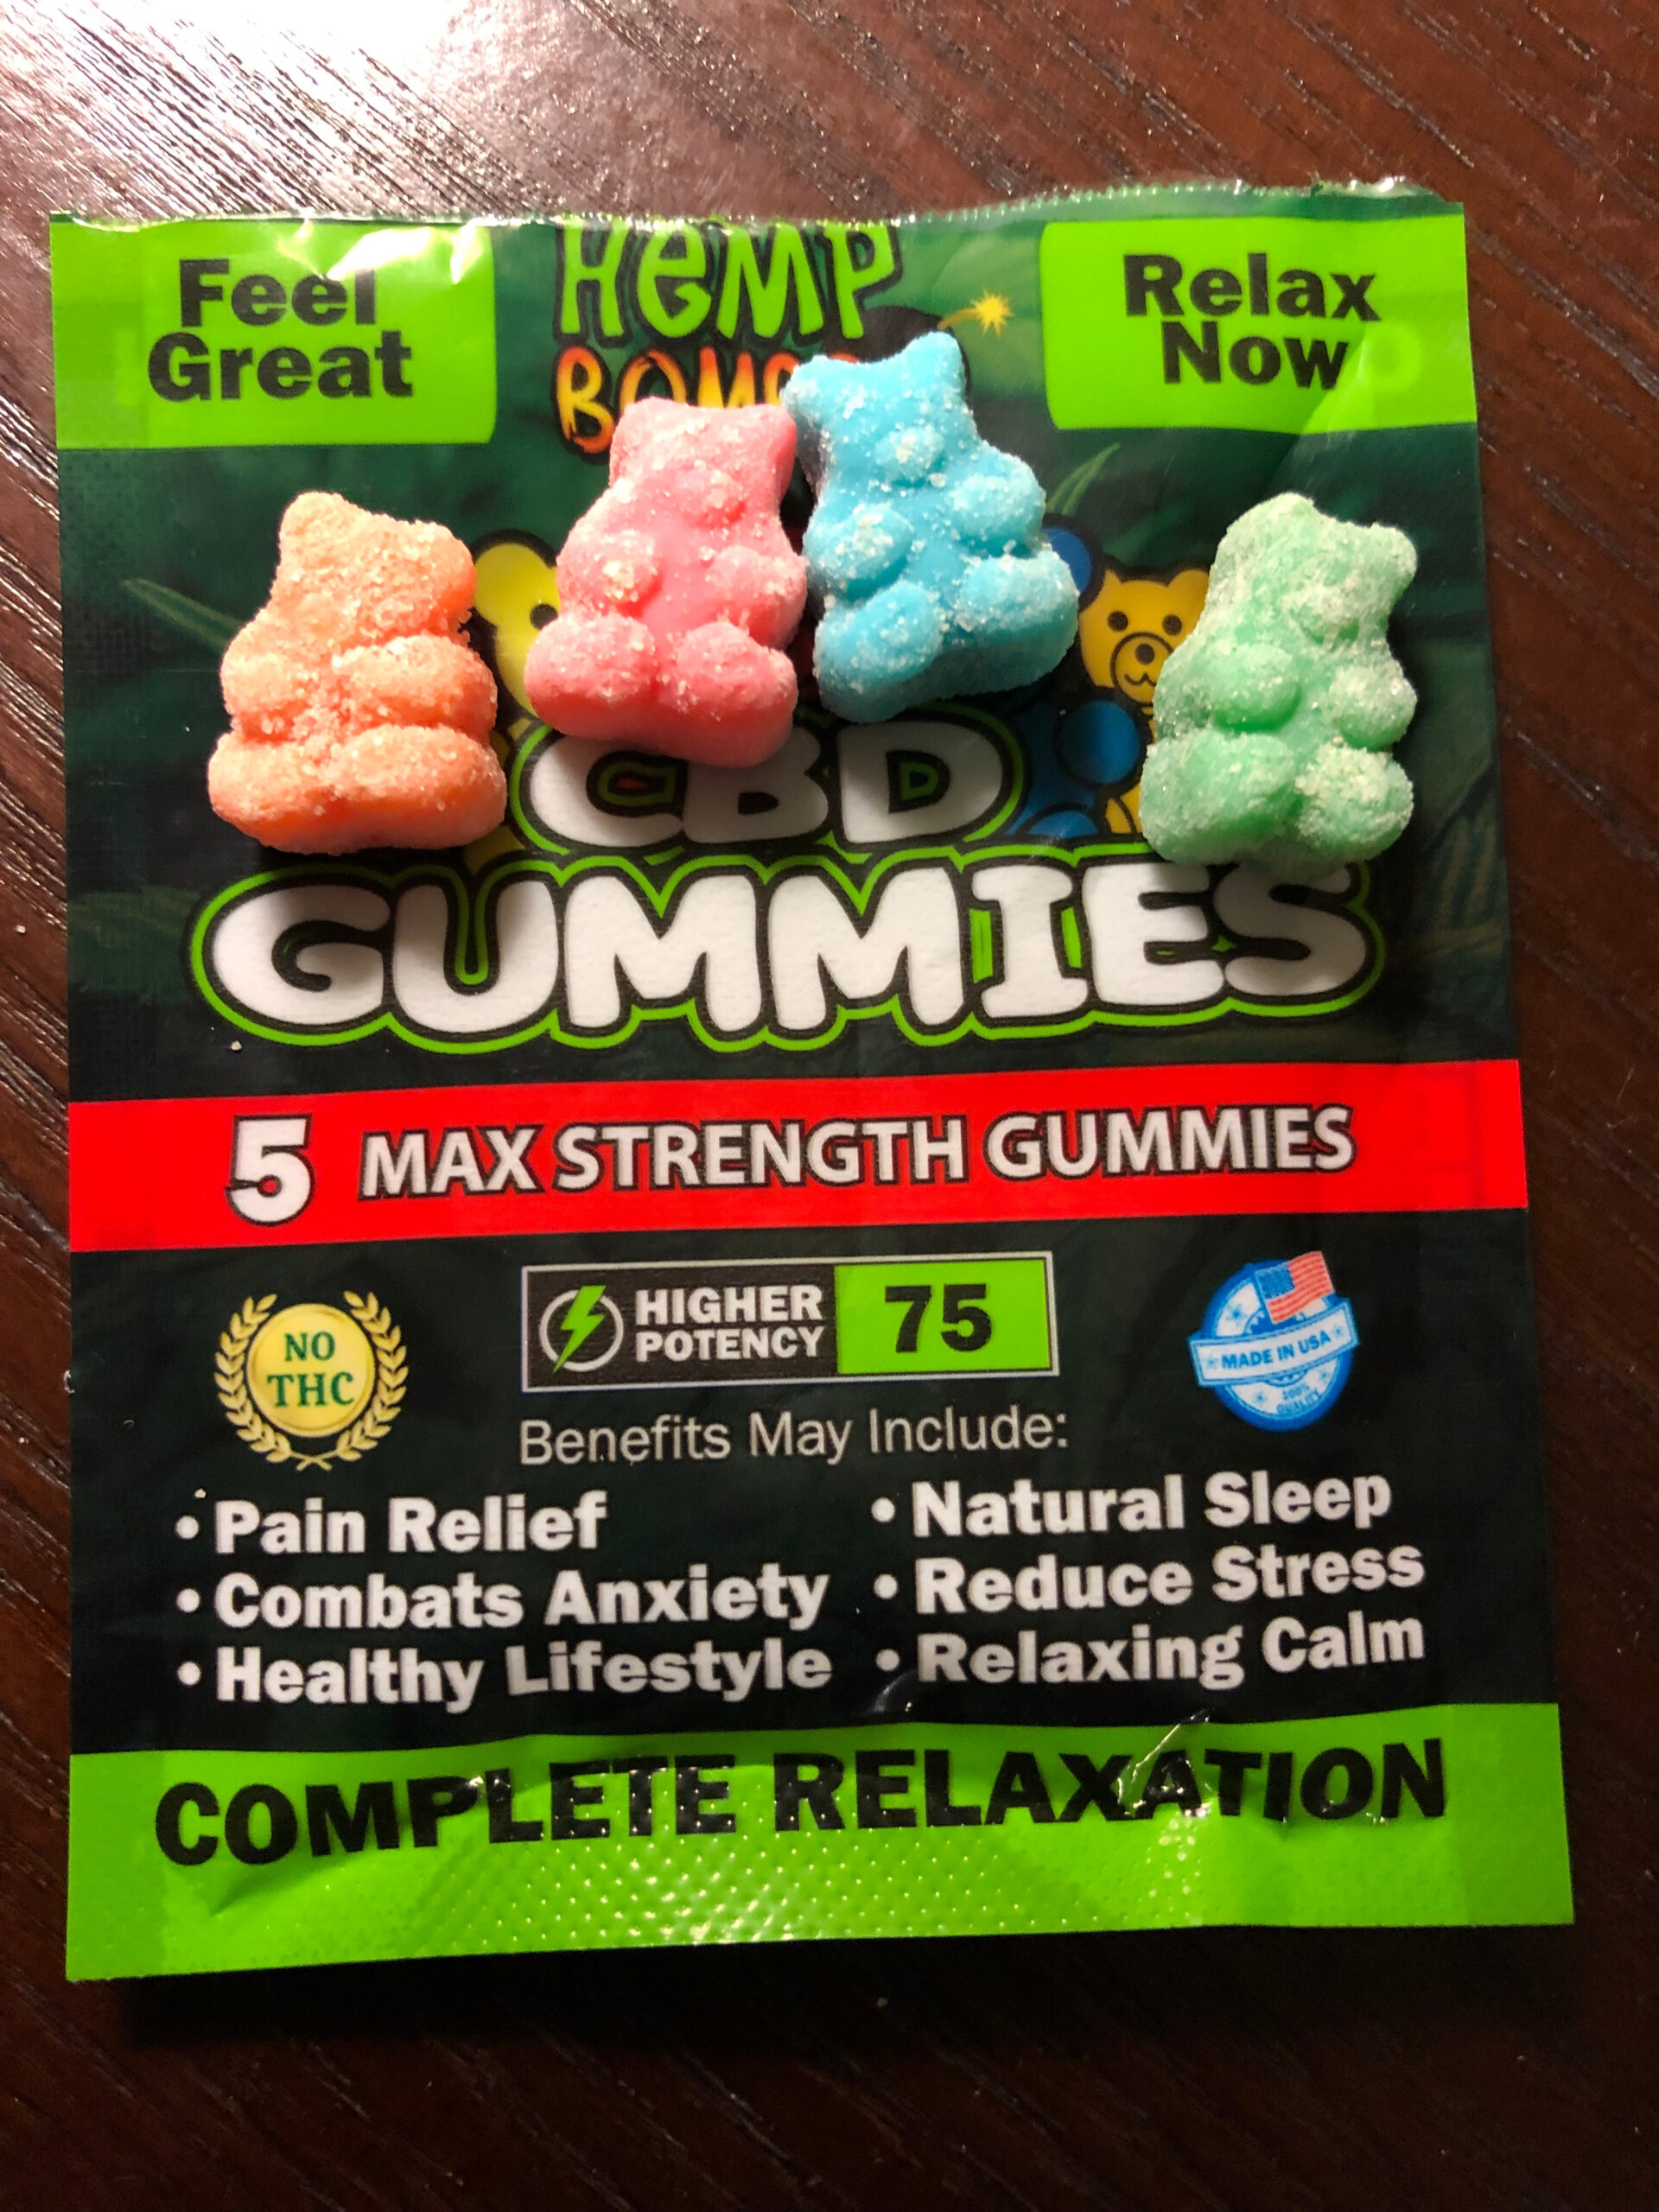 hemp-bombs-cbd-gummy-total-relaxation-product-review